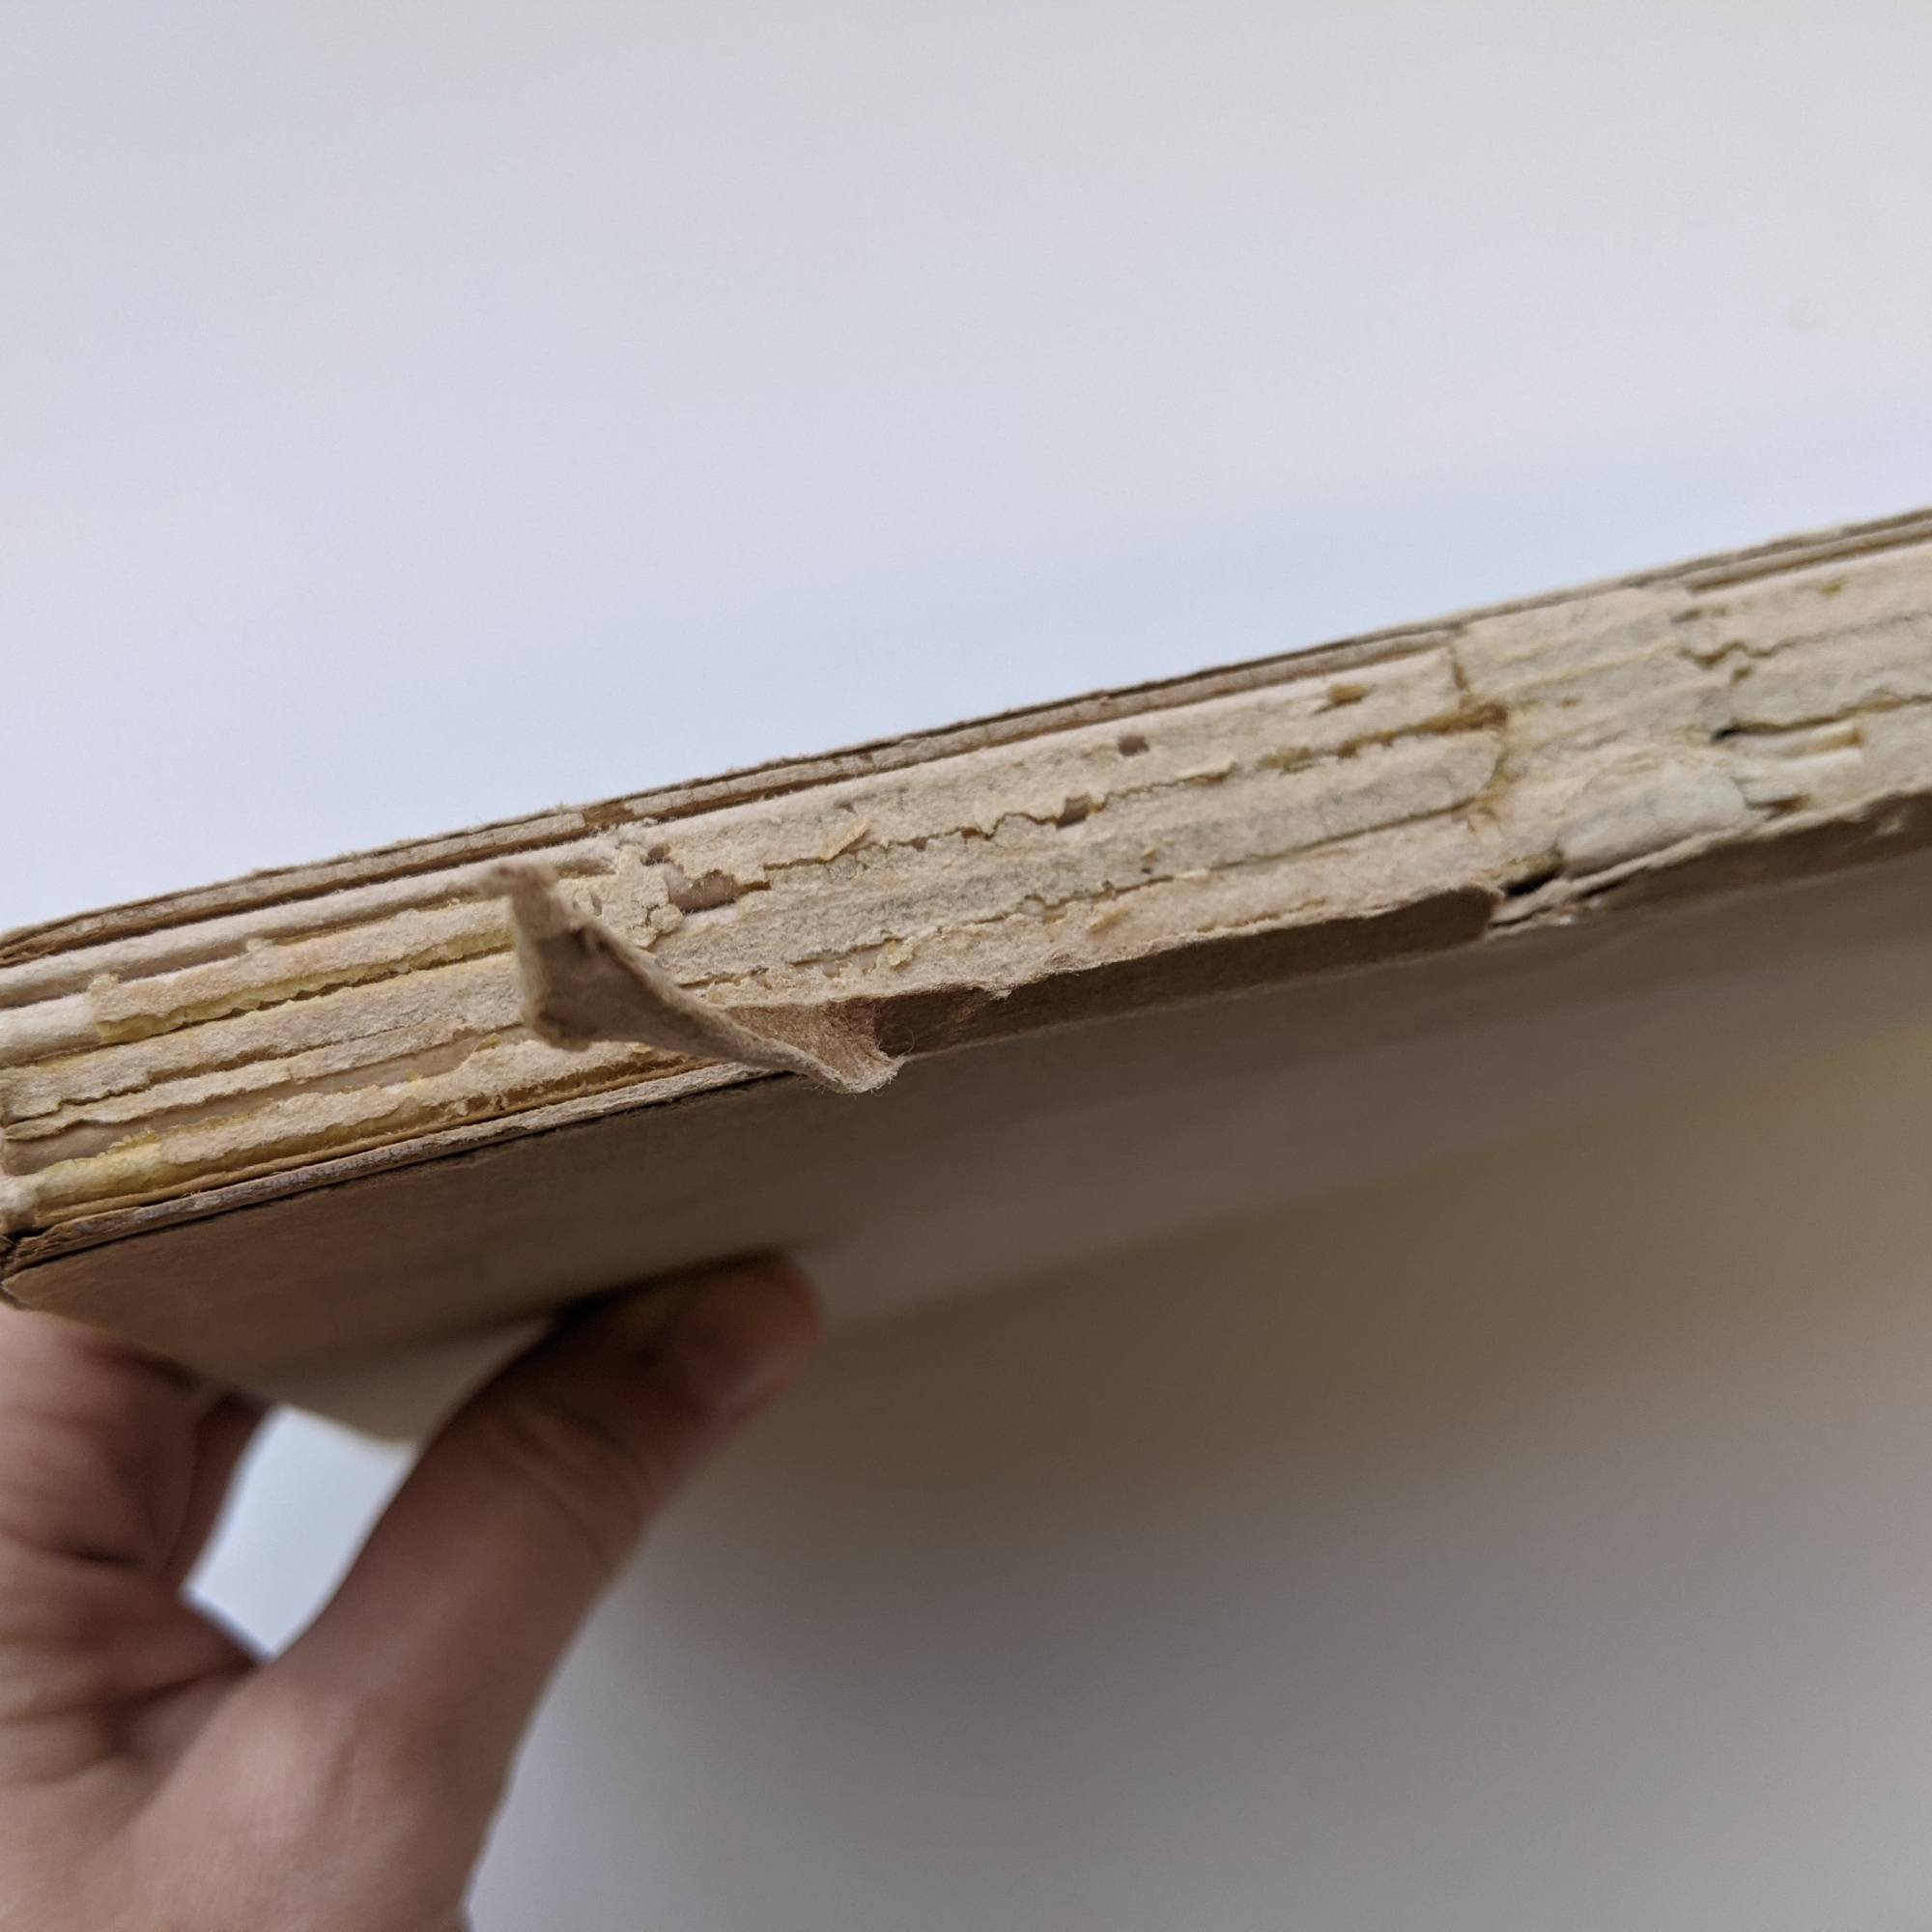 The spine of the book is visible where the dust jacket is missing areas. You can see the original spine lining paper and adhesives are cracking.